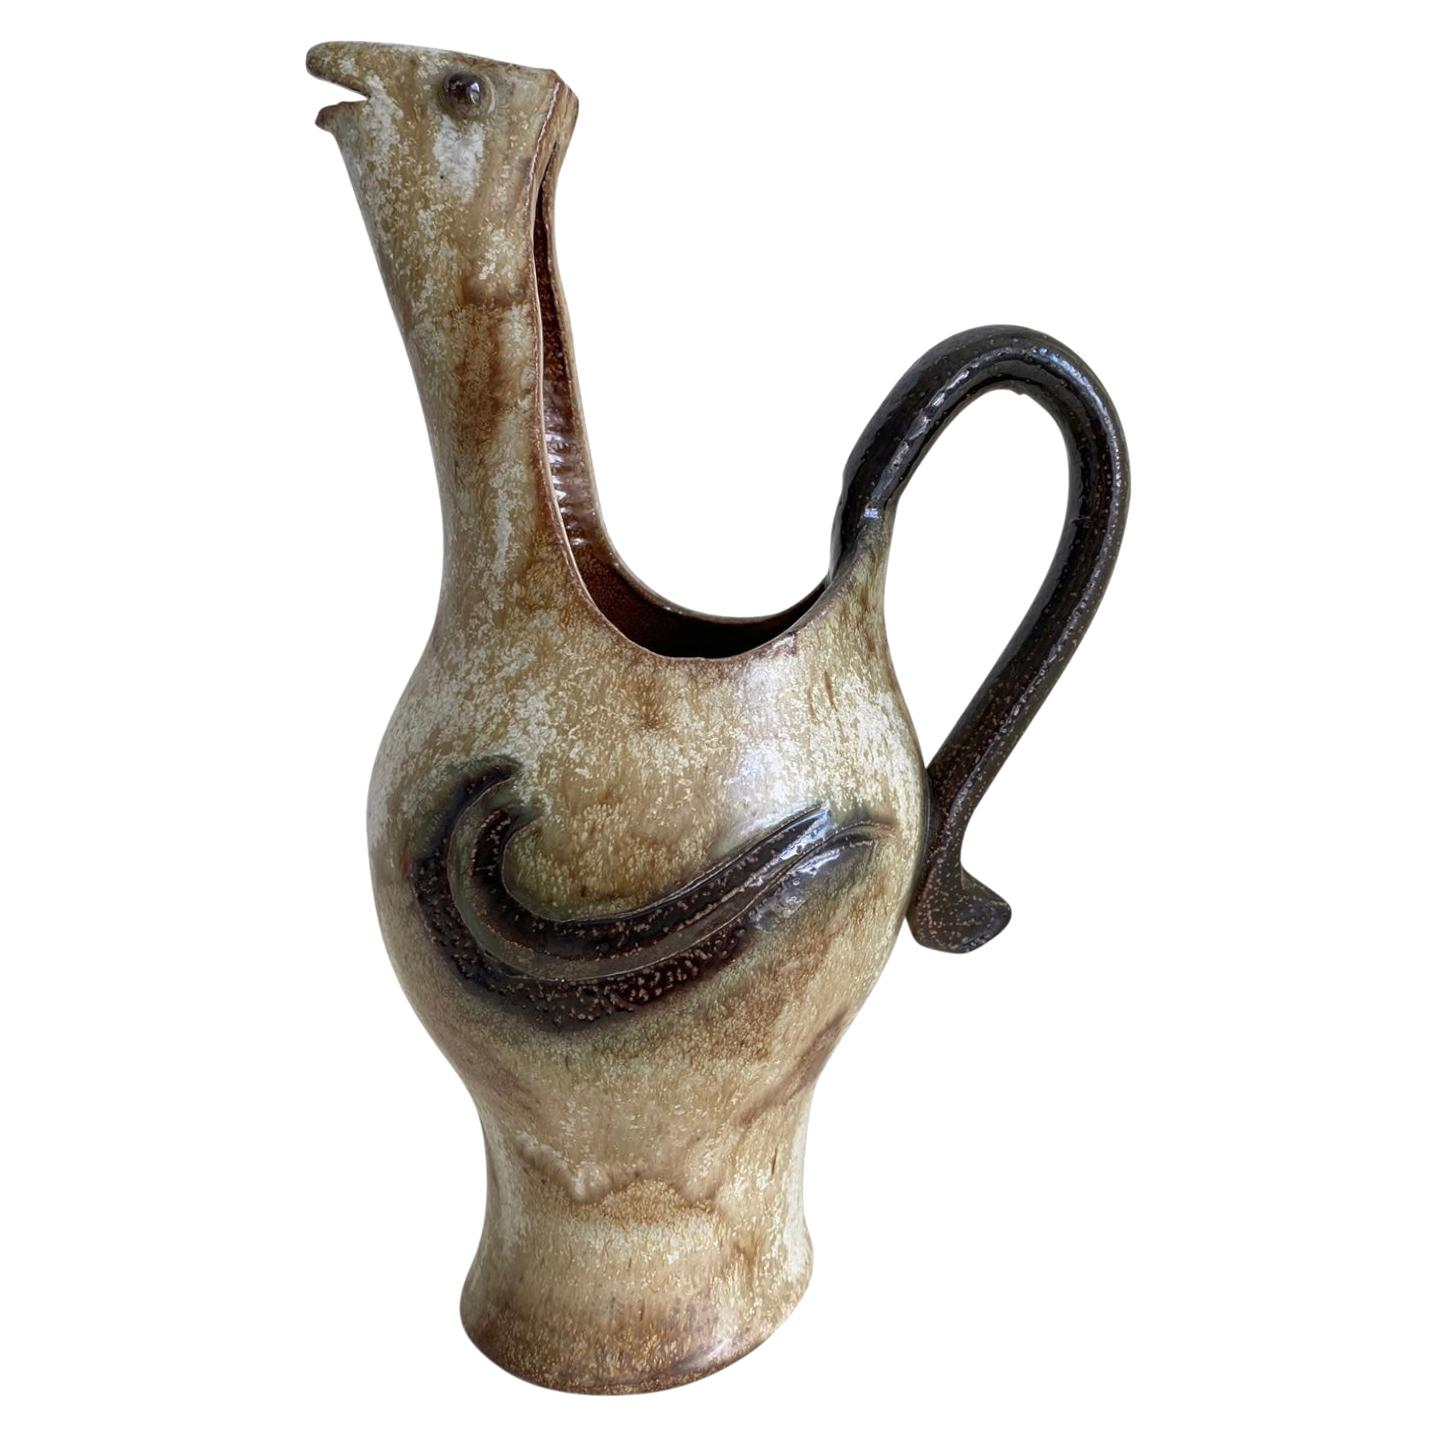 Roger Guérin, Exceptional Hand Crafted Decanter or Vase, Ca. 1930